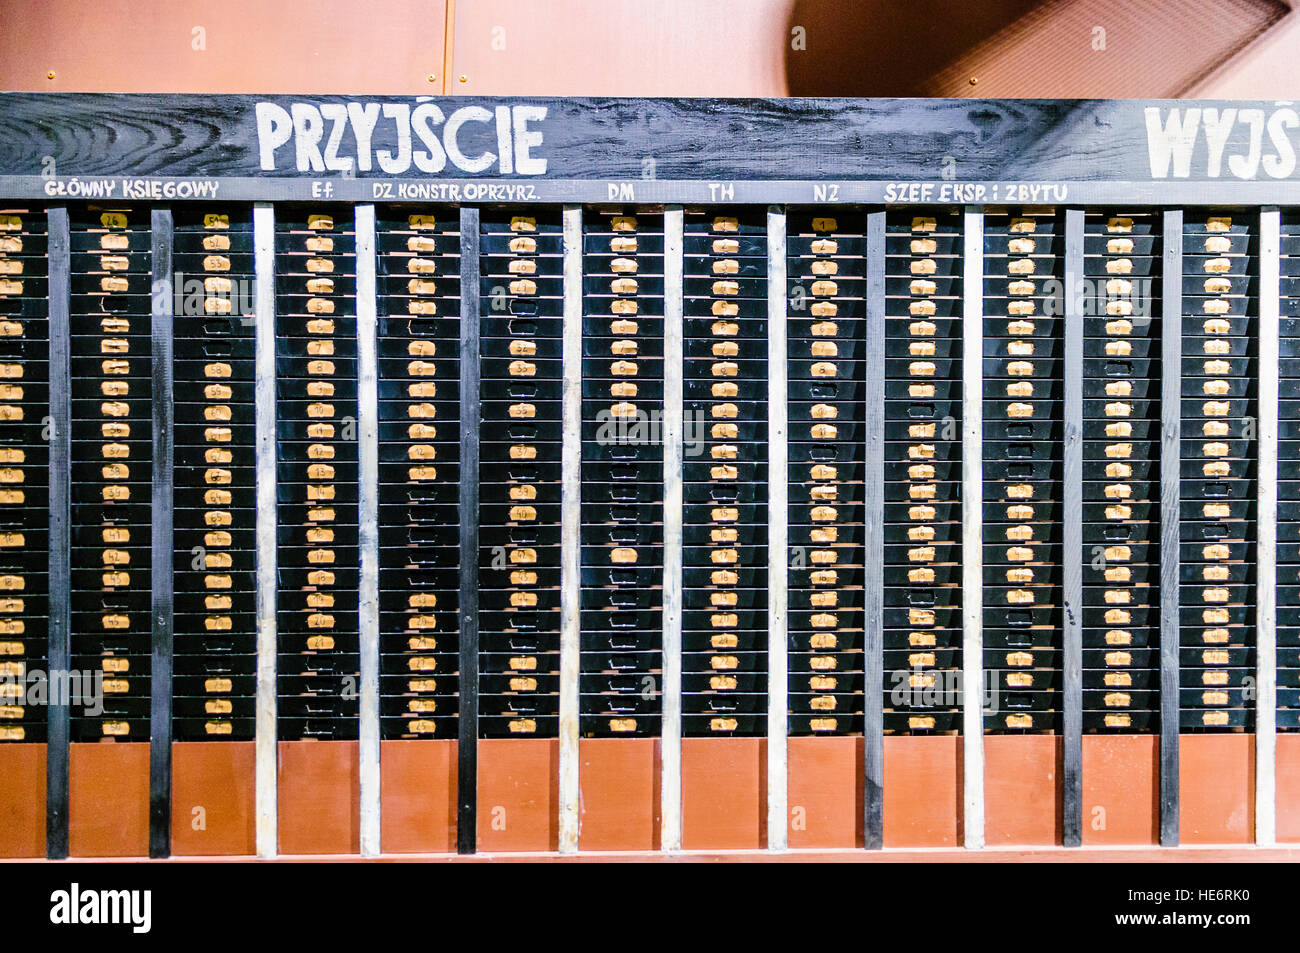 Clock-in cards and lockers used by workers in the Lenin Shipyard, in the European Solidarity Centre, Gdansk - Stock Image